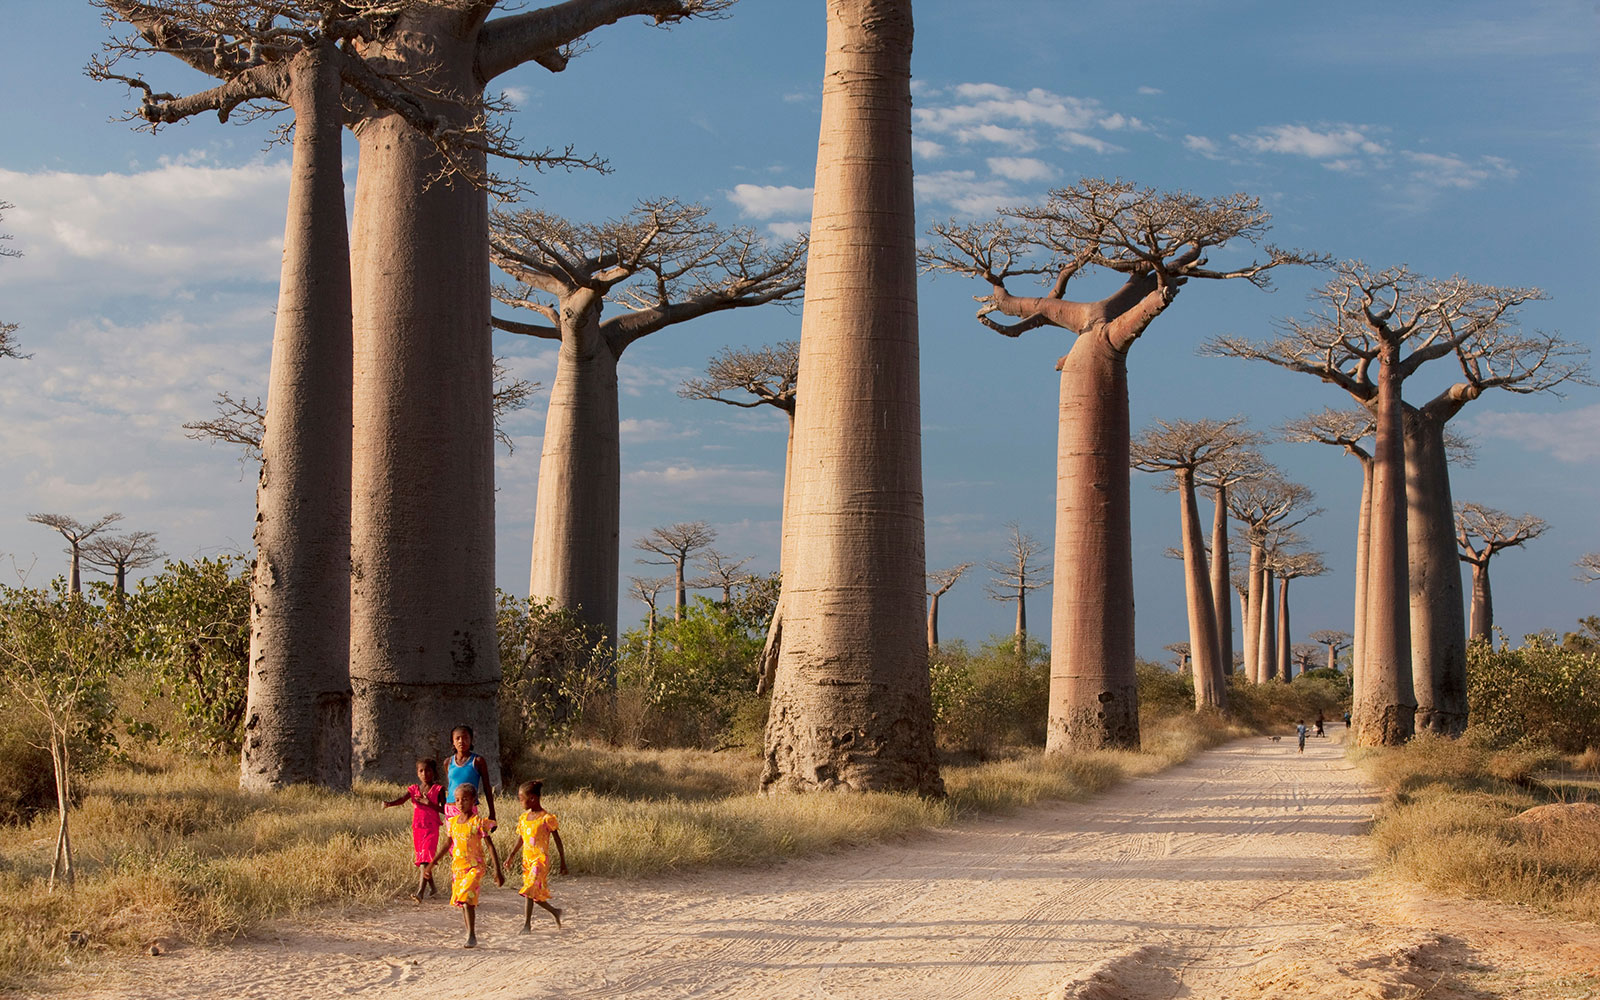 Madagascar's Avenue of the Baobabs